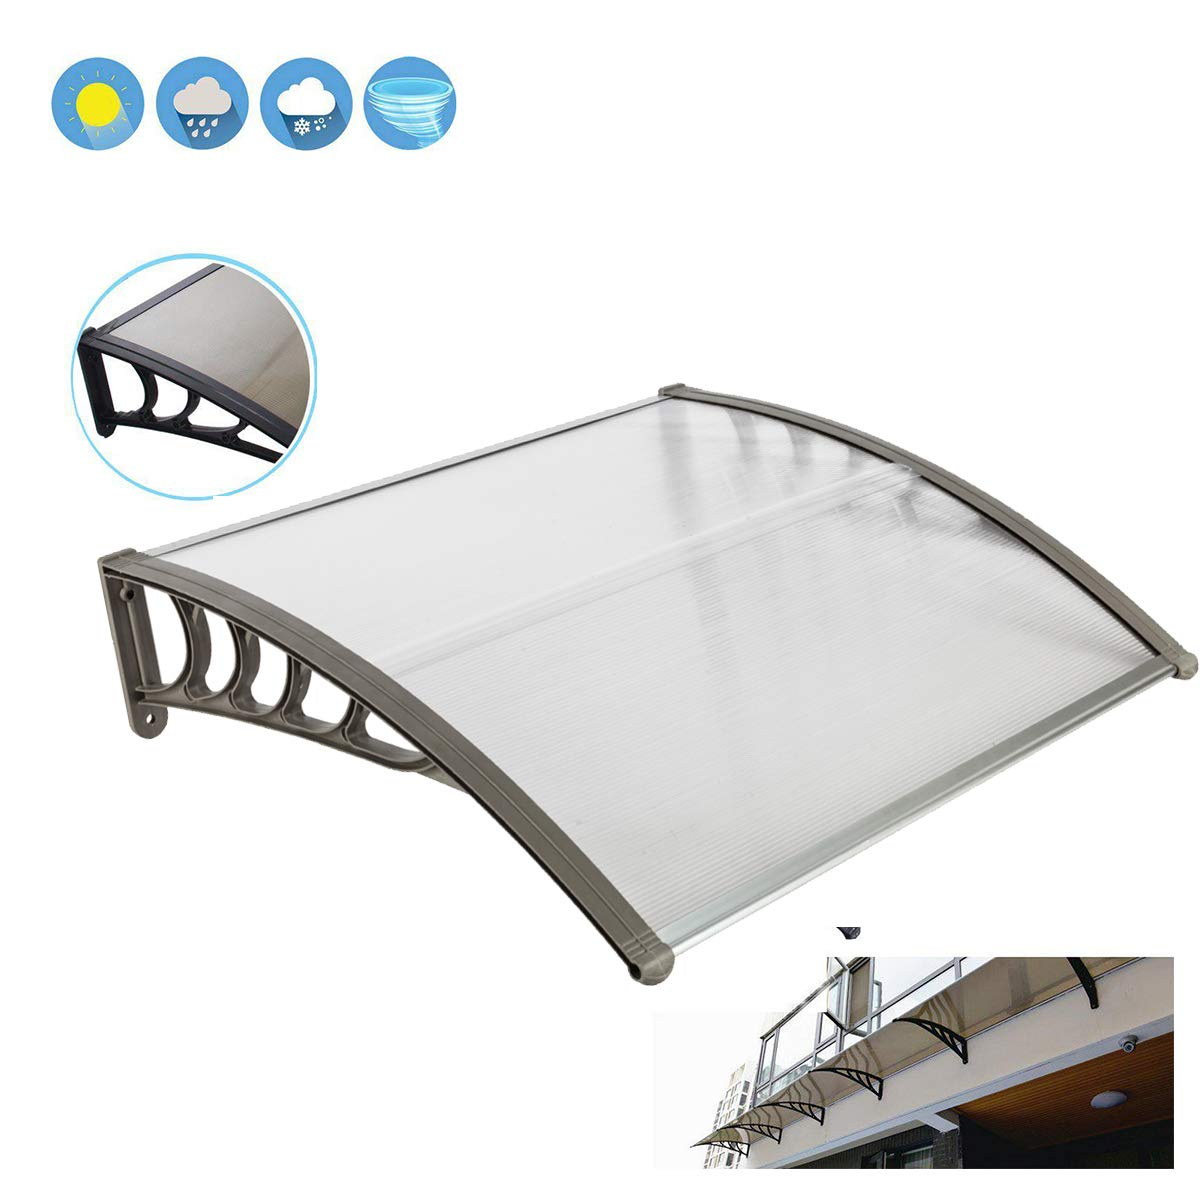 Wegi King Canopy Awning 100x100cm Garage Roof,Clear Overhead Window Cover Polycarbonate UV,Rain Snow Protection Hollow Sheet for Patio Lawn Garden House Greenhouse Front Door Outdoor (Gray Holder)